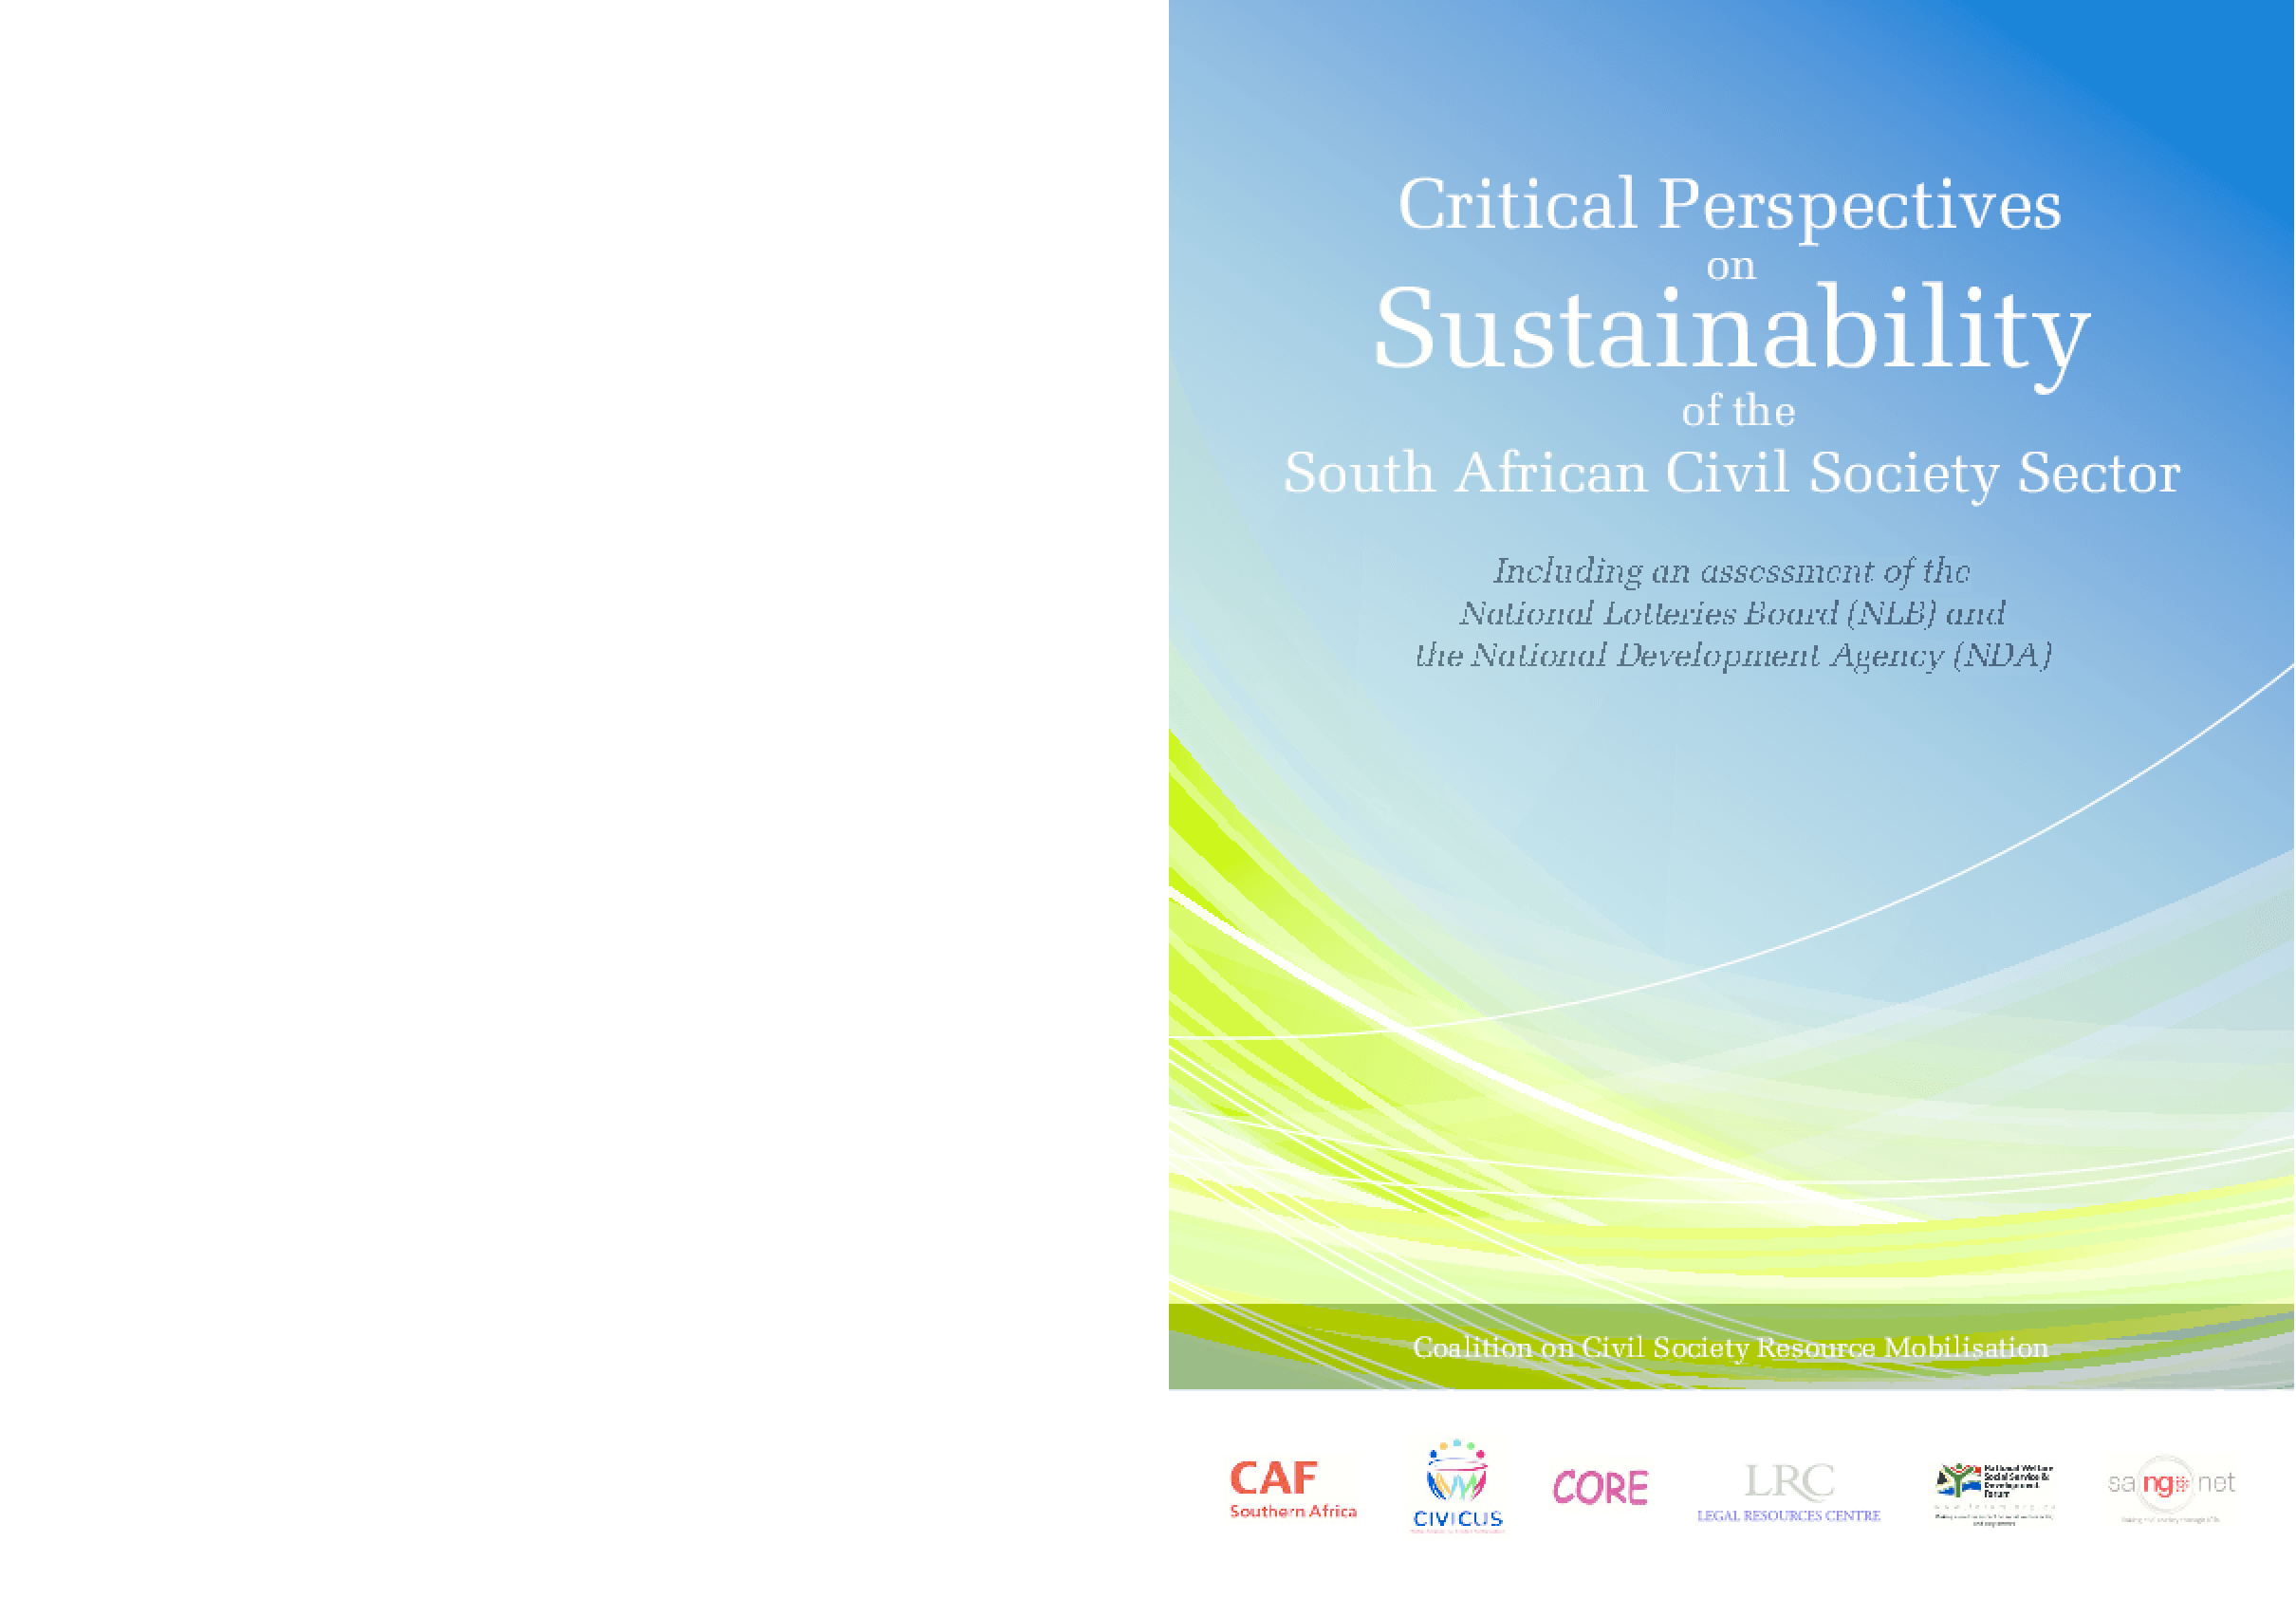 Critical Perspectives Sustainability of the on South African Civil Society Sector